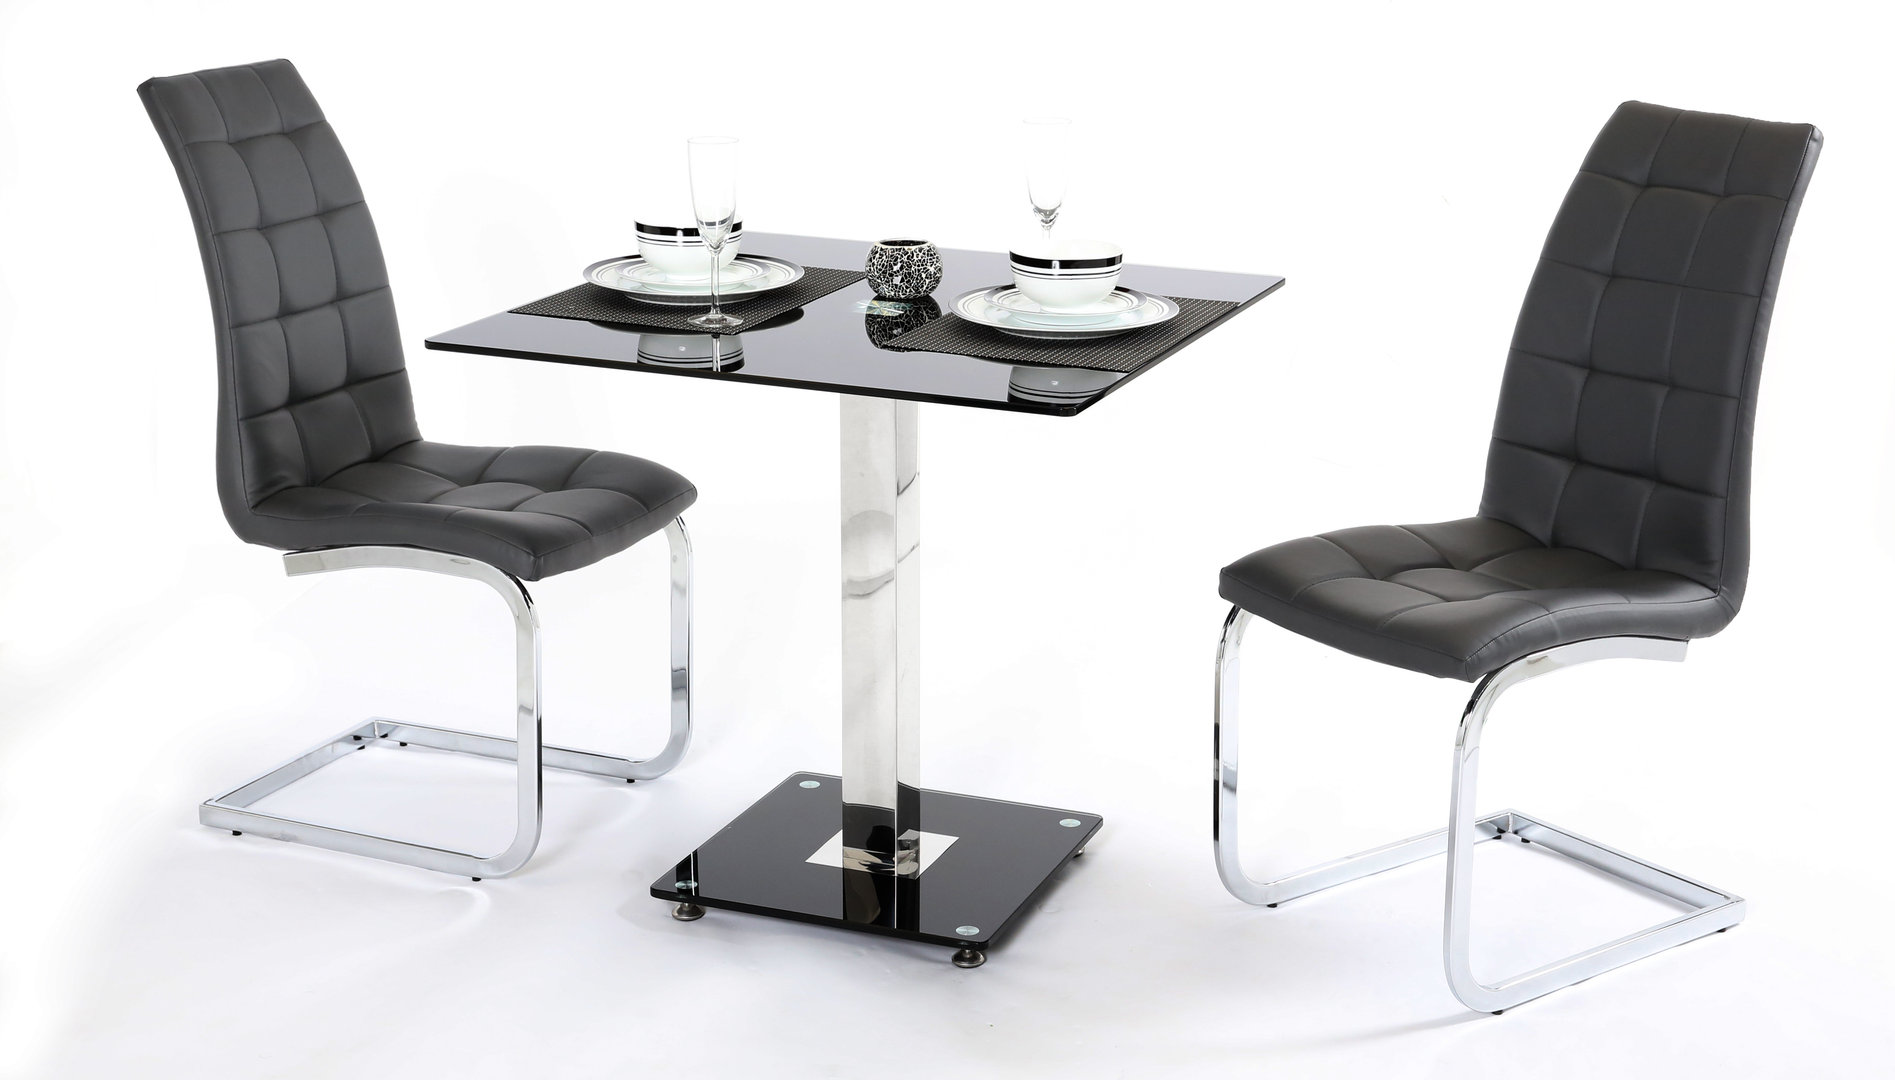 Ordinary Glass Dining Table For 2 Part - 6: 2 Seater Black Glass Dining Table And Chairs ...